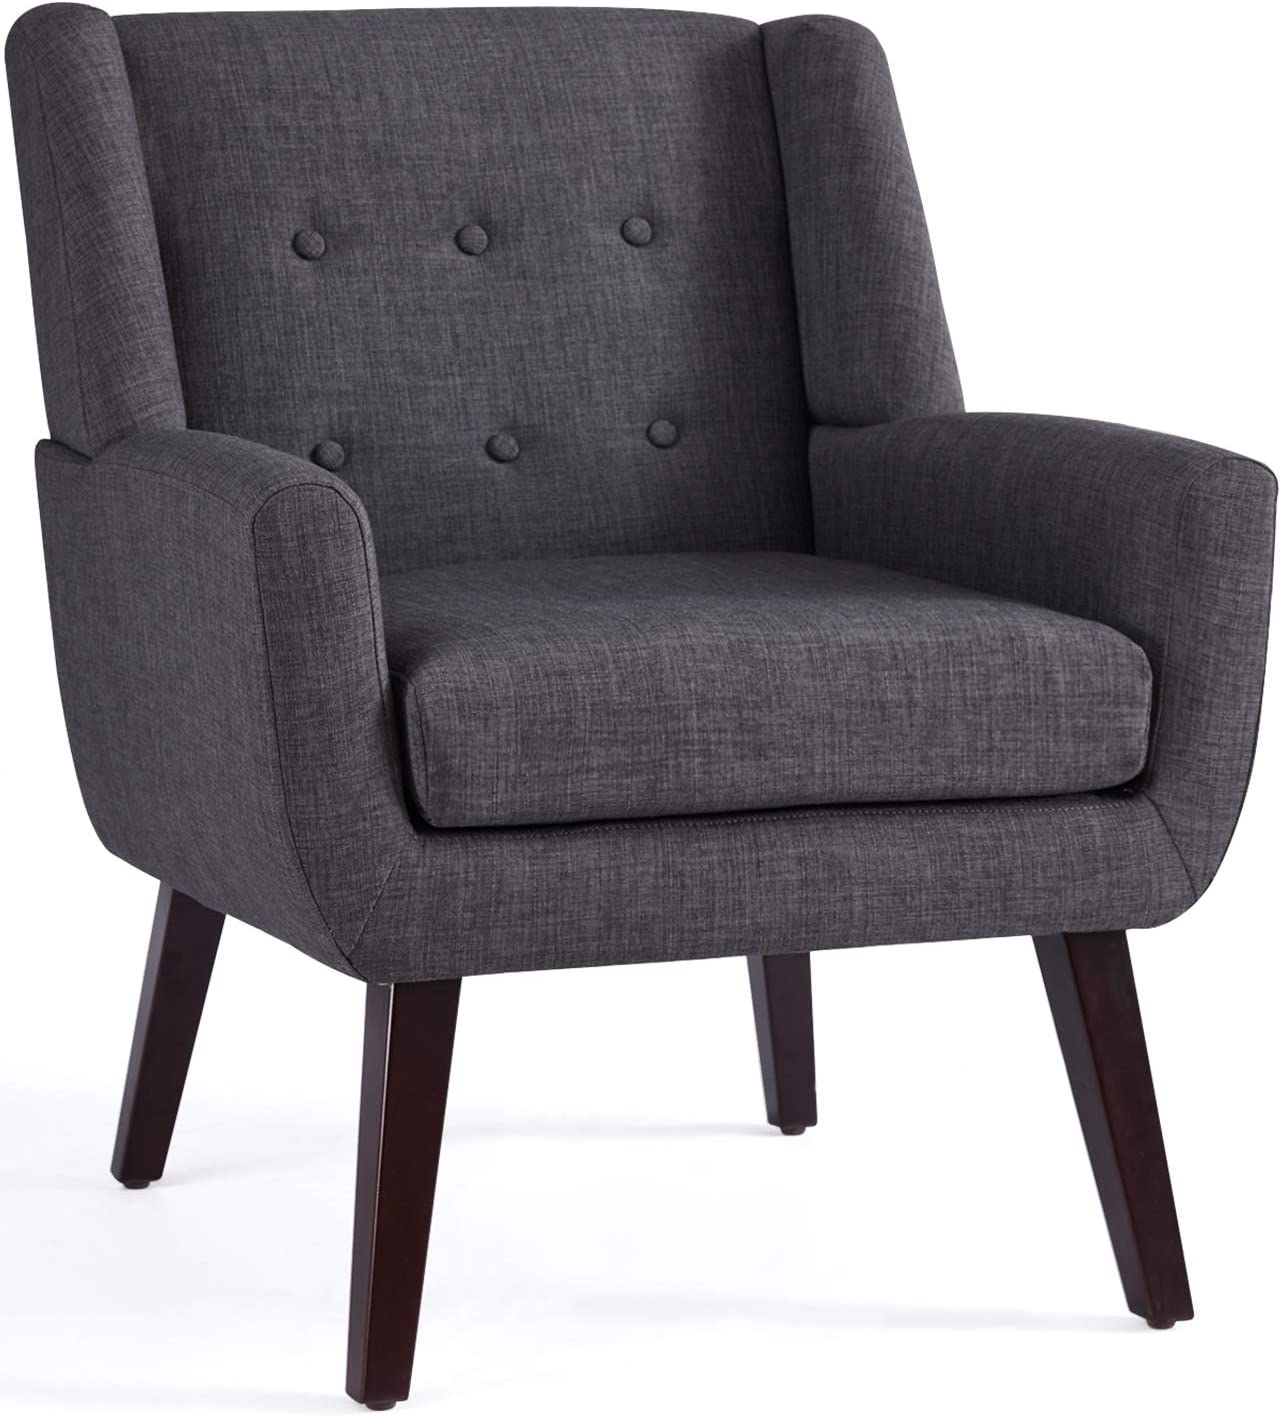 HUIMO Accent Chair, Upholstered Button Tufted Armchair, Linen Fabric Sofa  Chairs for Bedroom, Living Room, Mid-Century Modern Comfy Reading